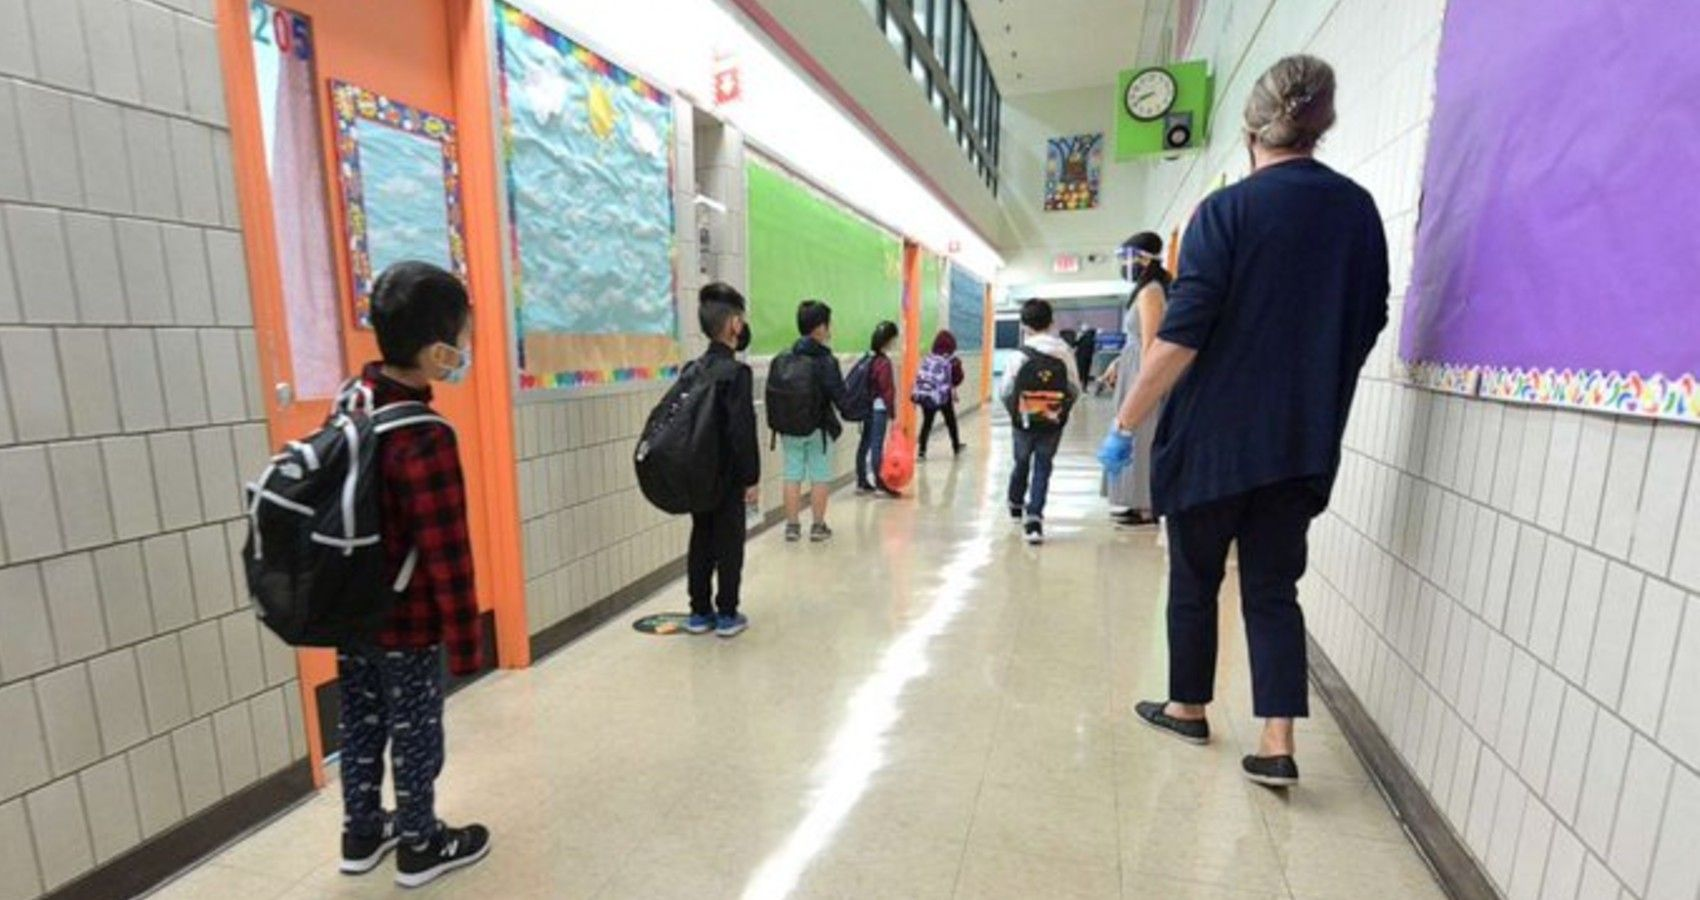 NYC How To Run Schools Safely During Pandemic   Moms.com